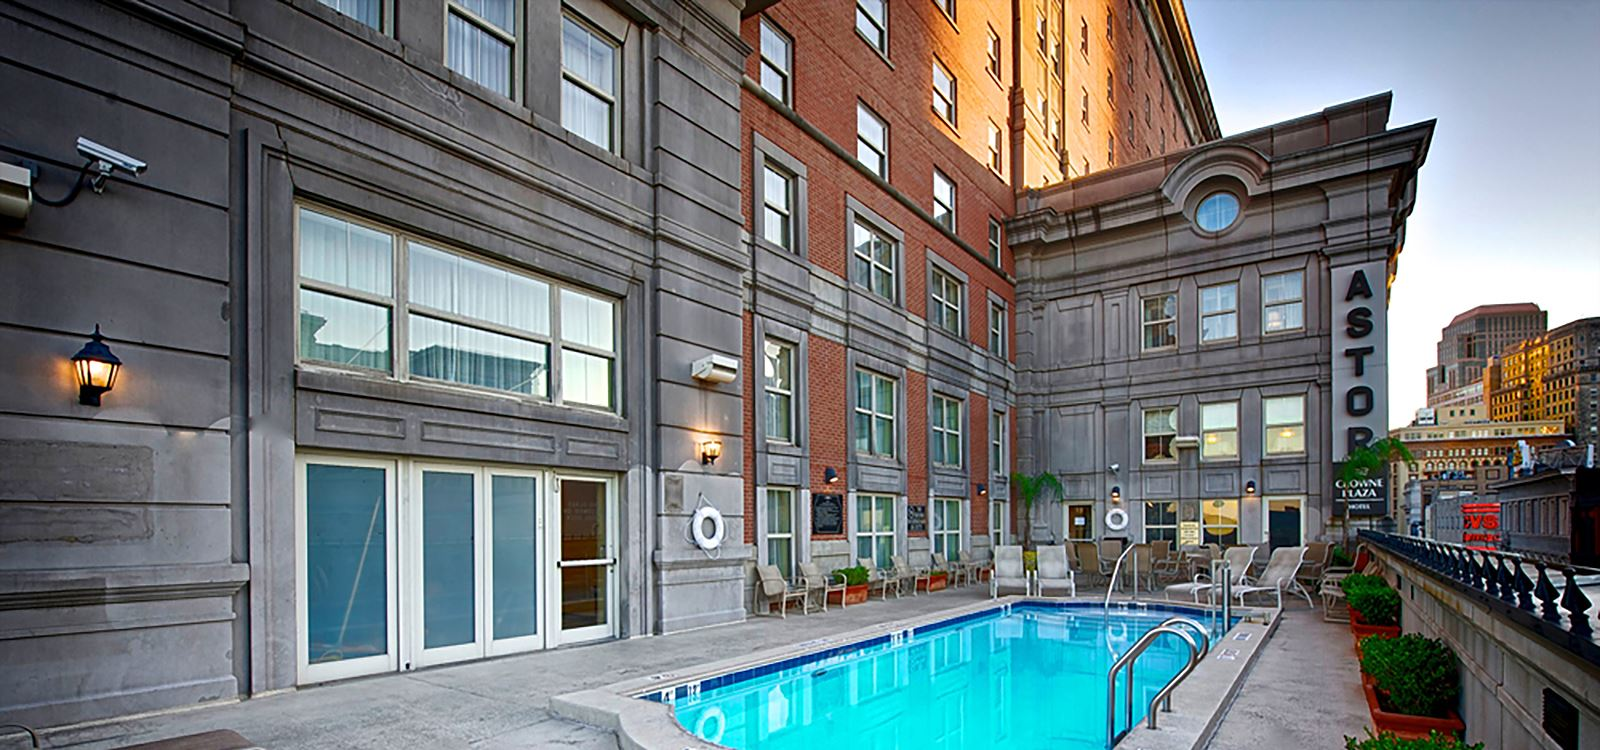 Astor Crowne Plaza French Quarter New Orleans Hotel